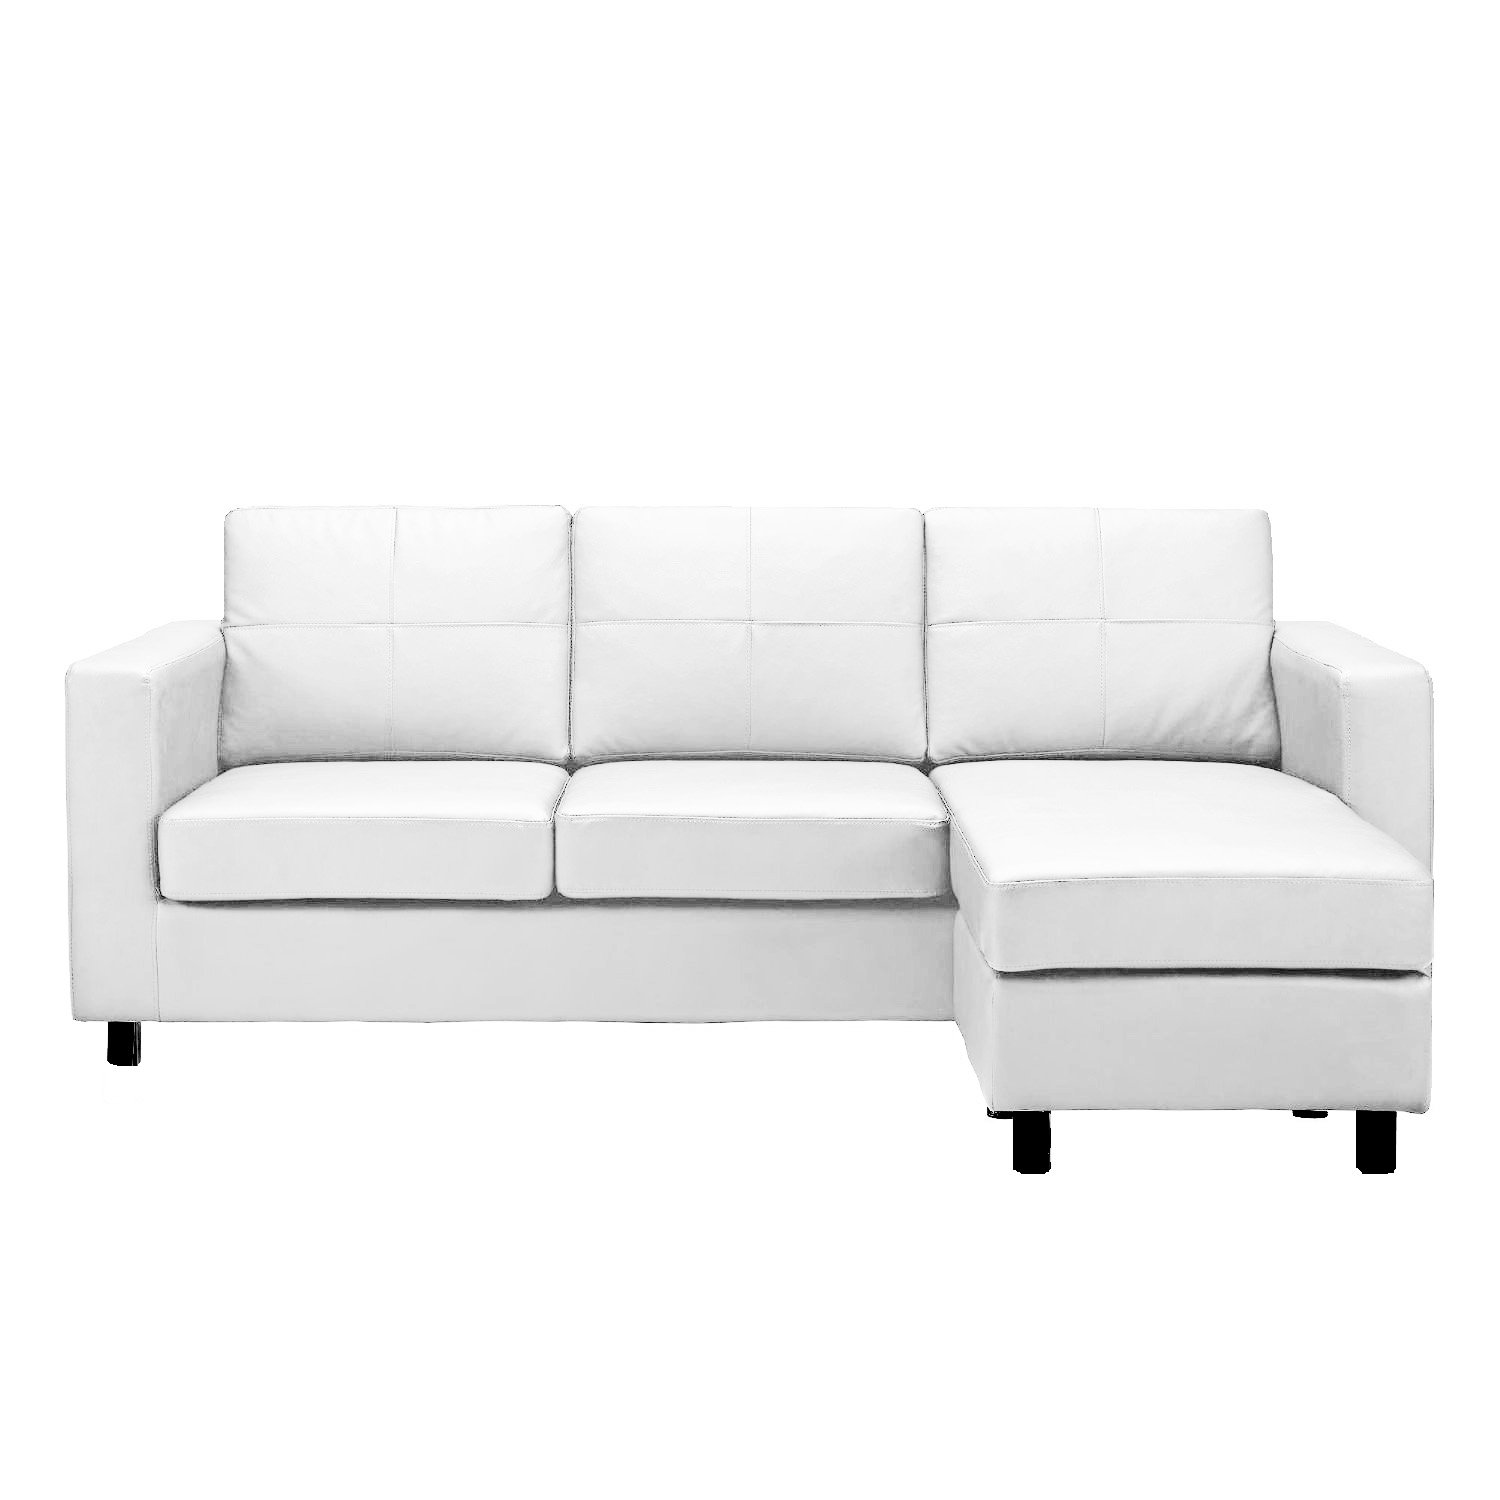 Living Room Small White Couch amazon com modern bonded leather sectional sofa small space configurable couch colors black white kitchen dining